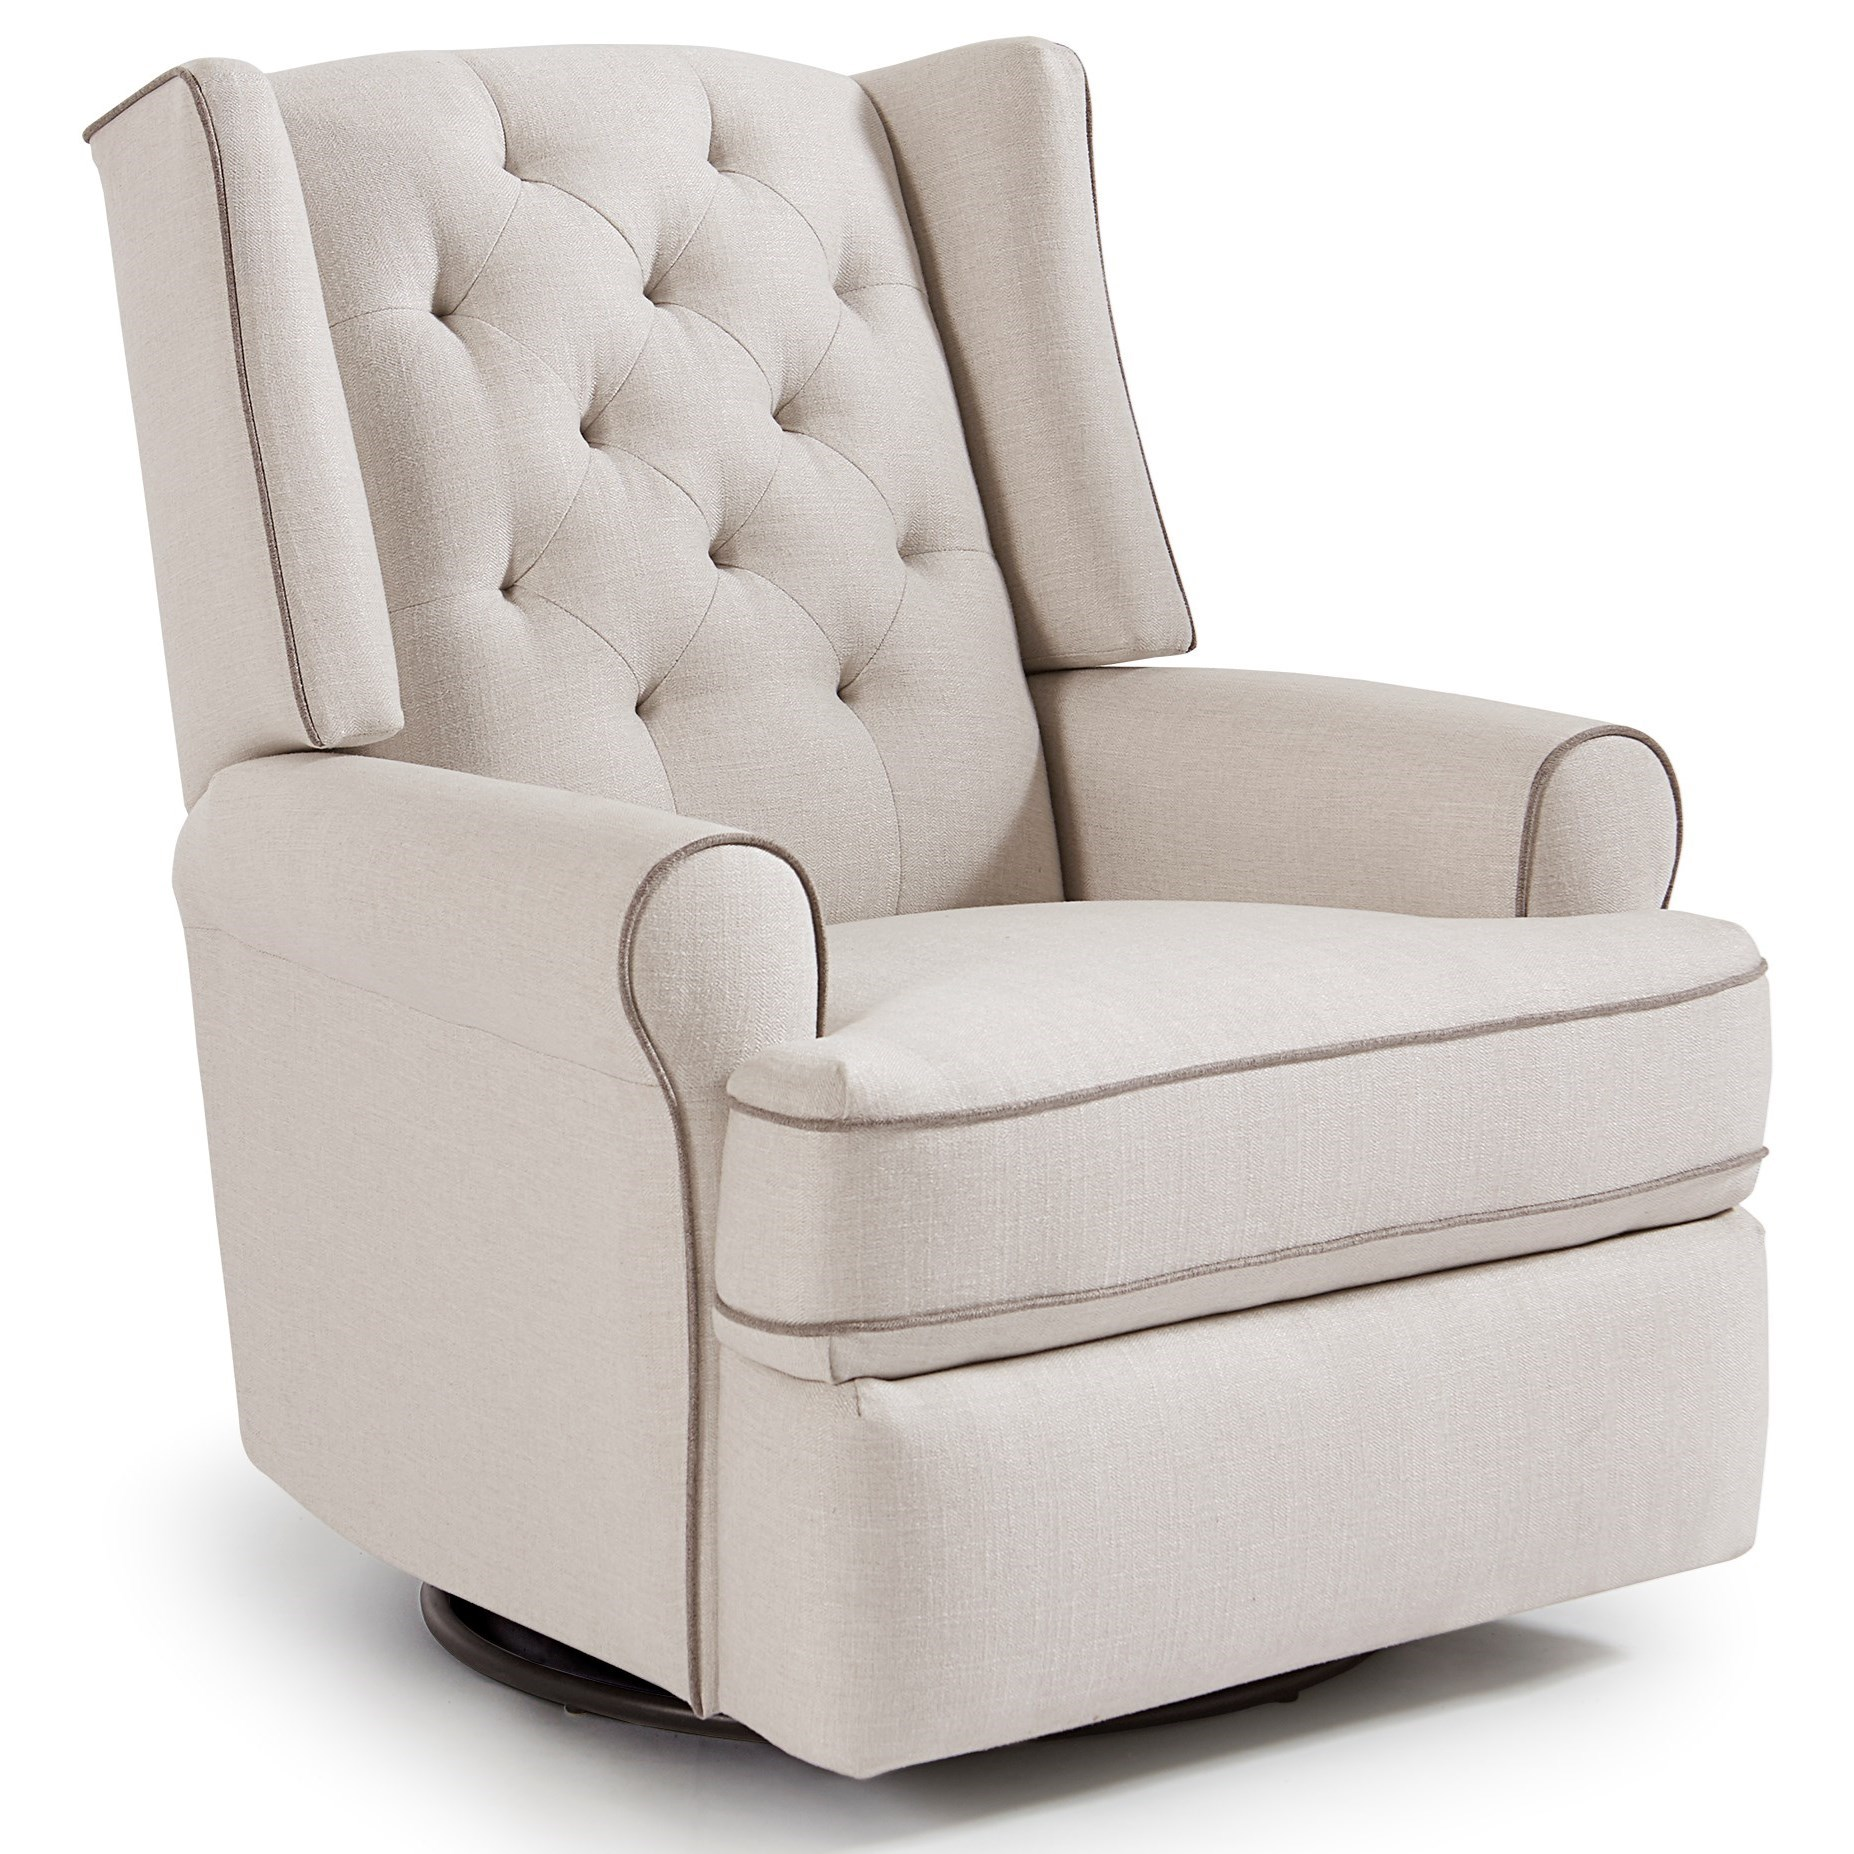 Kendra Power Swivel Glider Recliner by Best Home Furnishings at Baer's Furniture